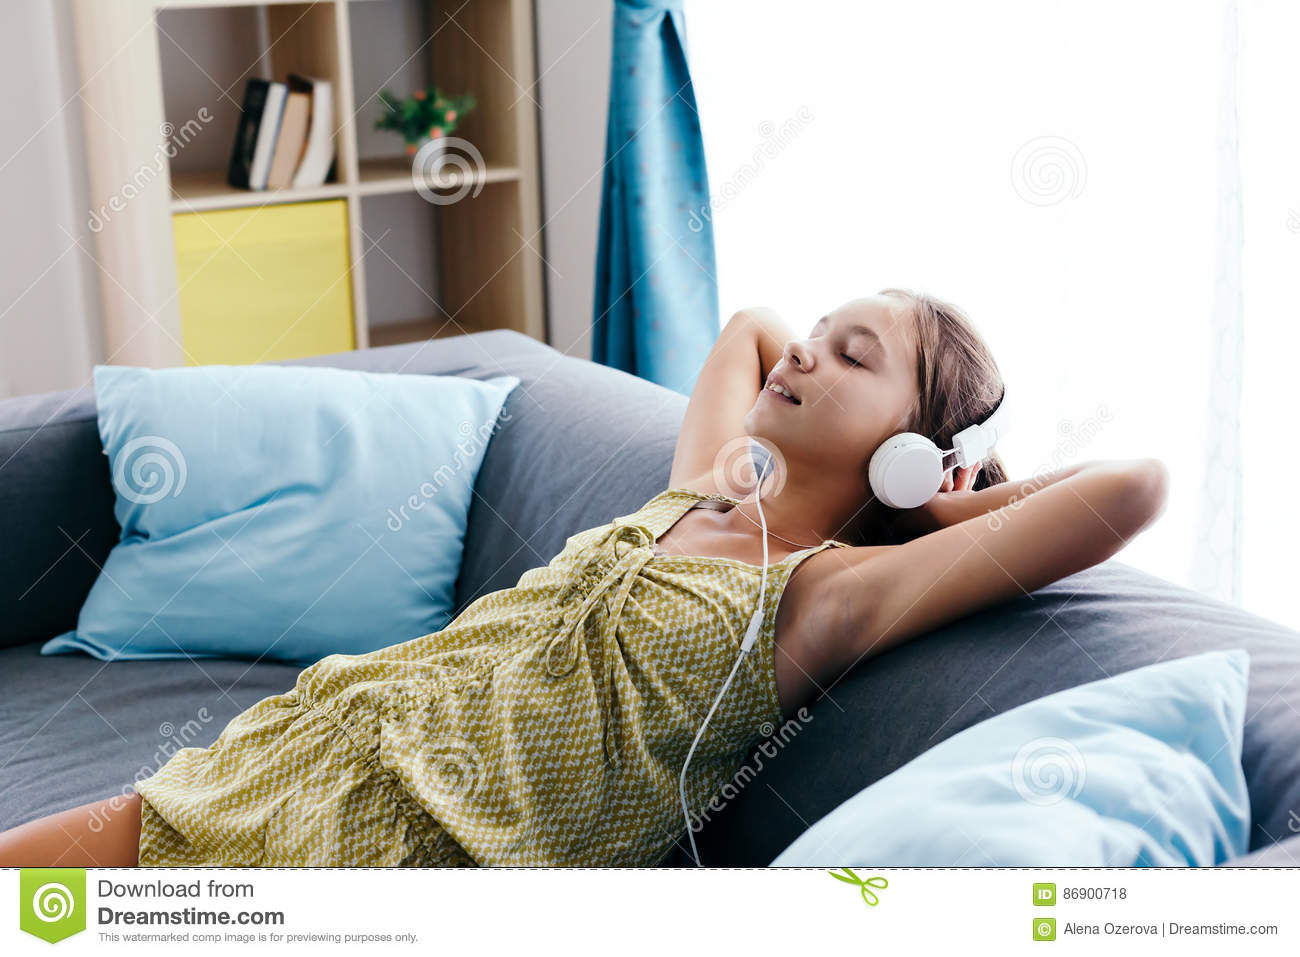 Download Tween Girl Relaxing On Couch At Home Stock Photo   Image Of Media,  Comfortable